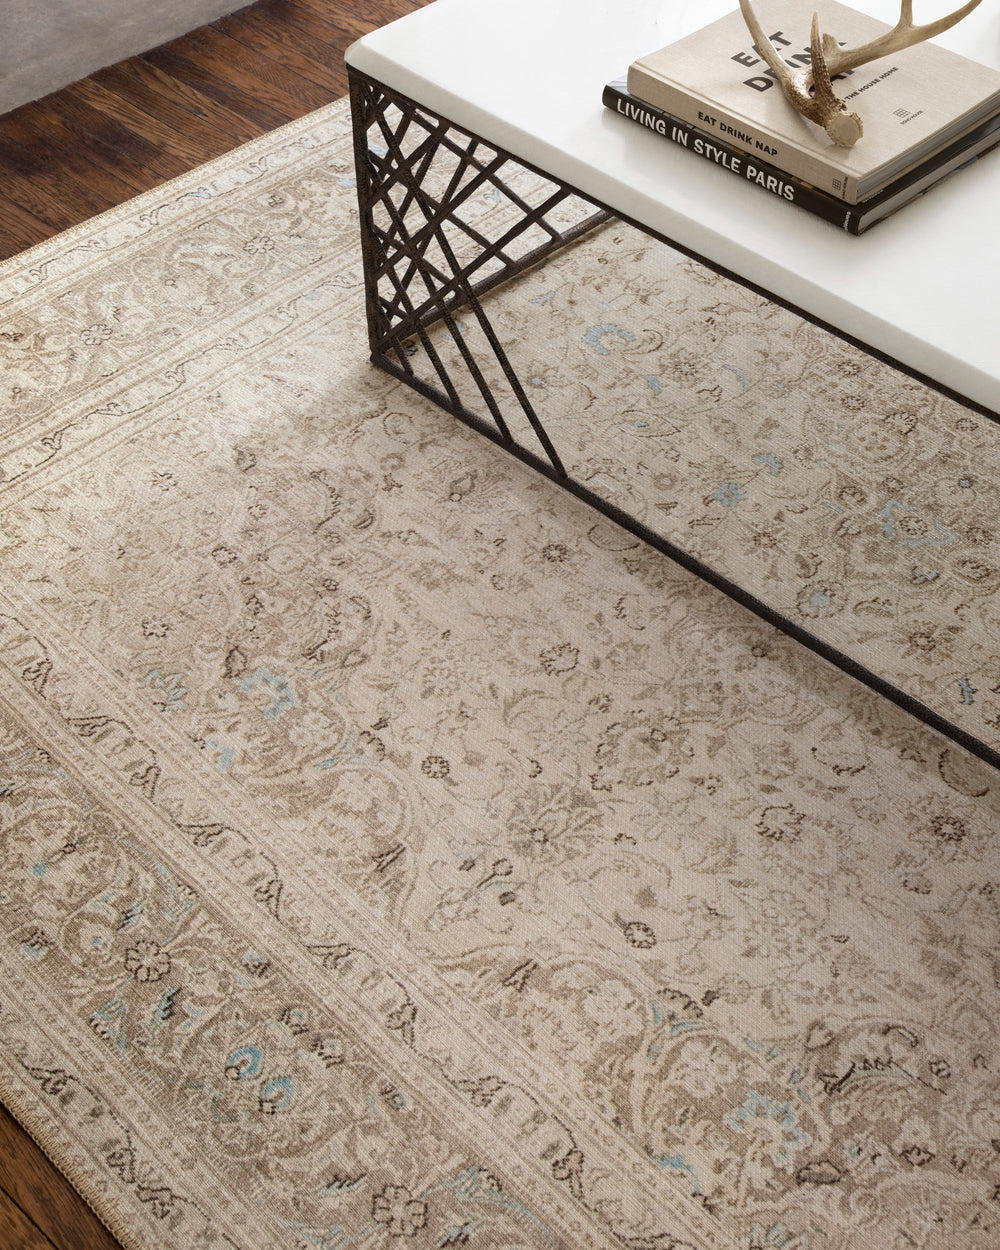 Loren Sand/Taupe Rug - Amethyst Home Timeless and classic, the Loren Collection offers vintage hand-knotted looks at an affordable price. Created in Turkey using the most advanced rug-making technology, these printed designs provide a textured effect by portraying every single individual knot on a soft polyester base.